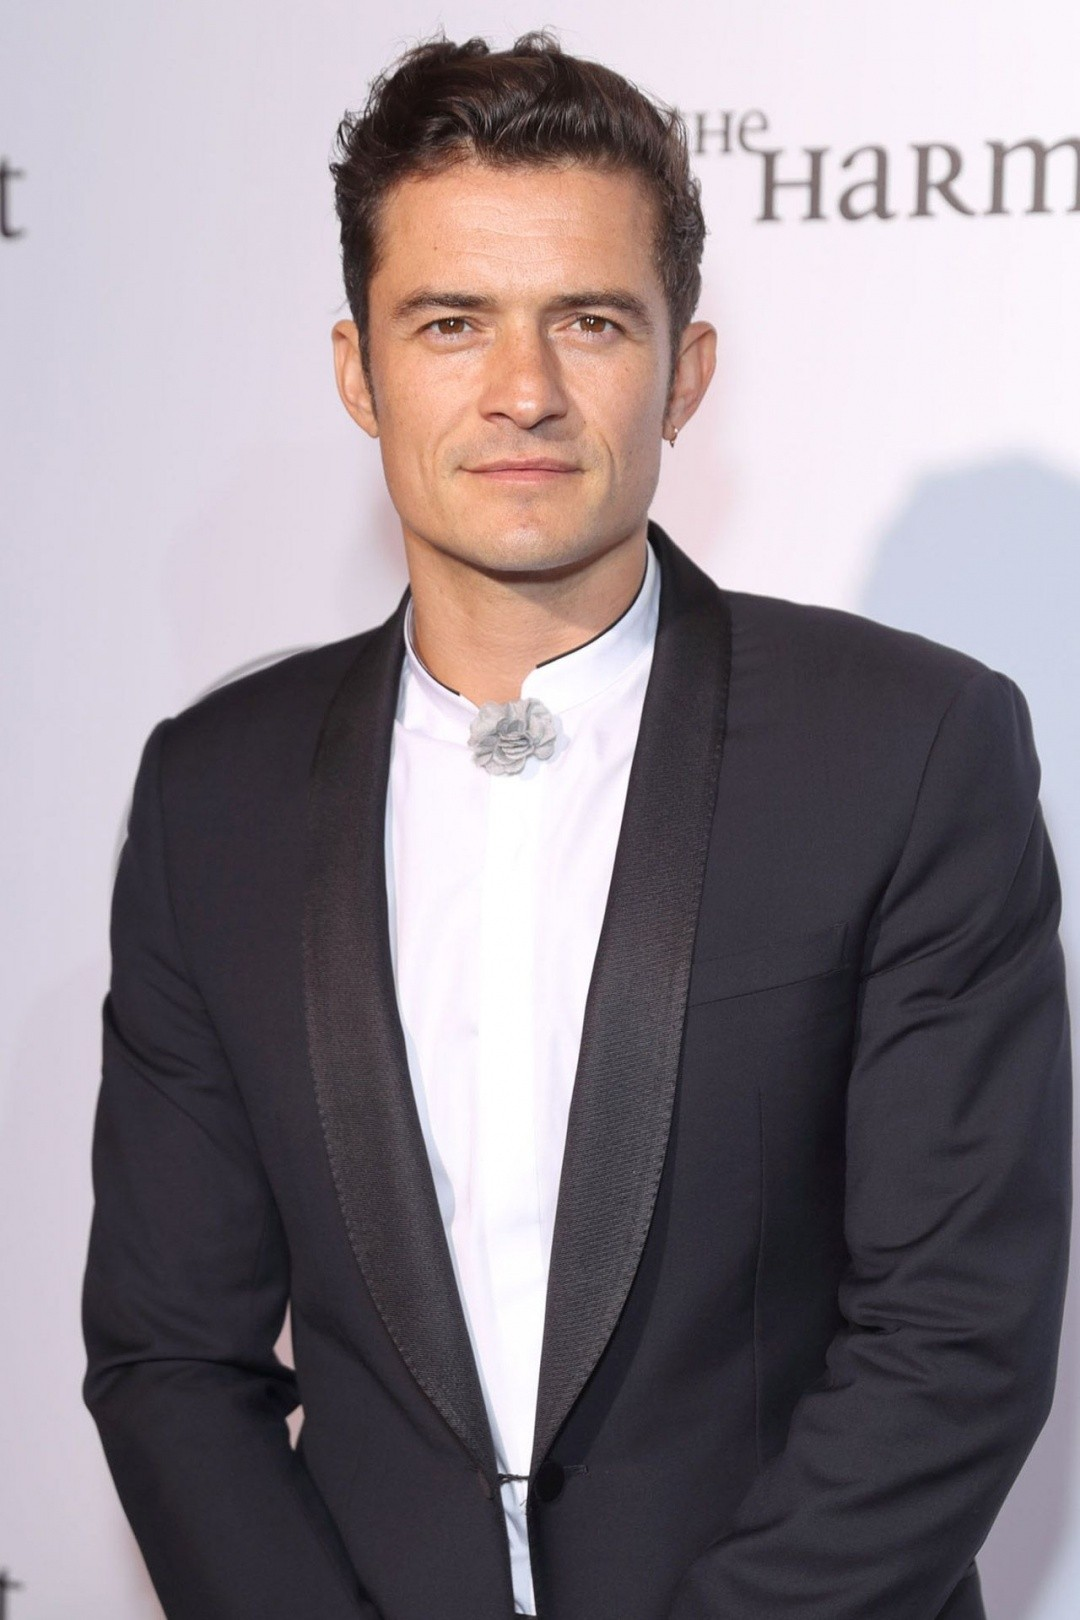 Orlando Bloom 10 Celebrities with the Extremely Gross Hygiene Practices